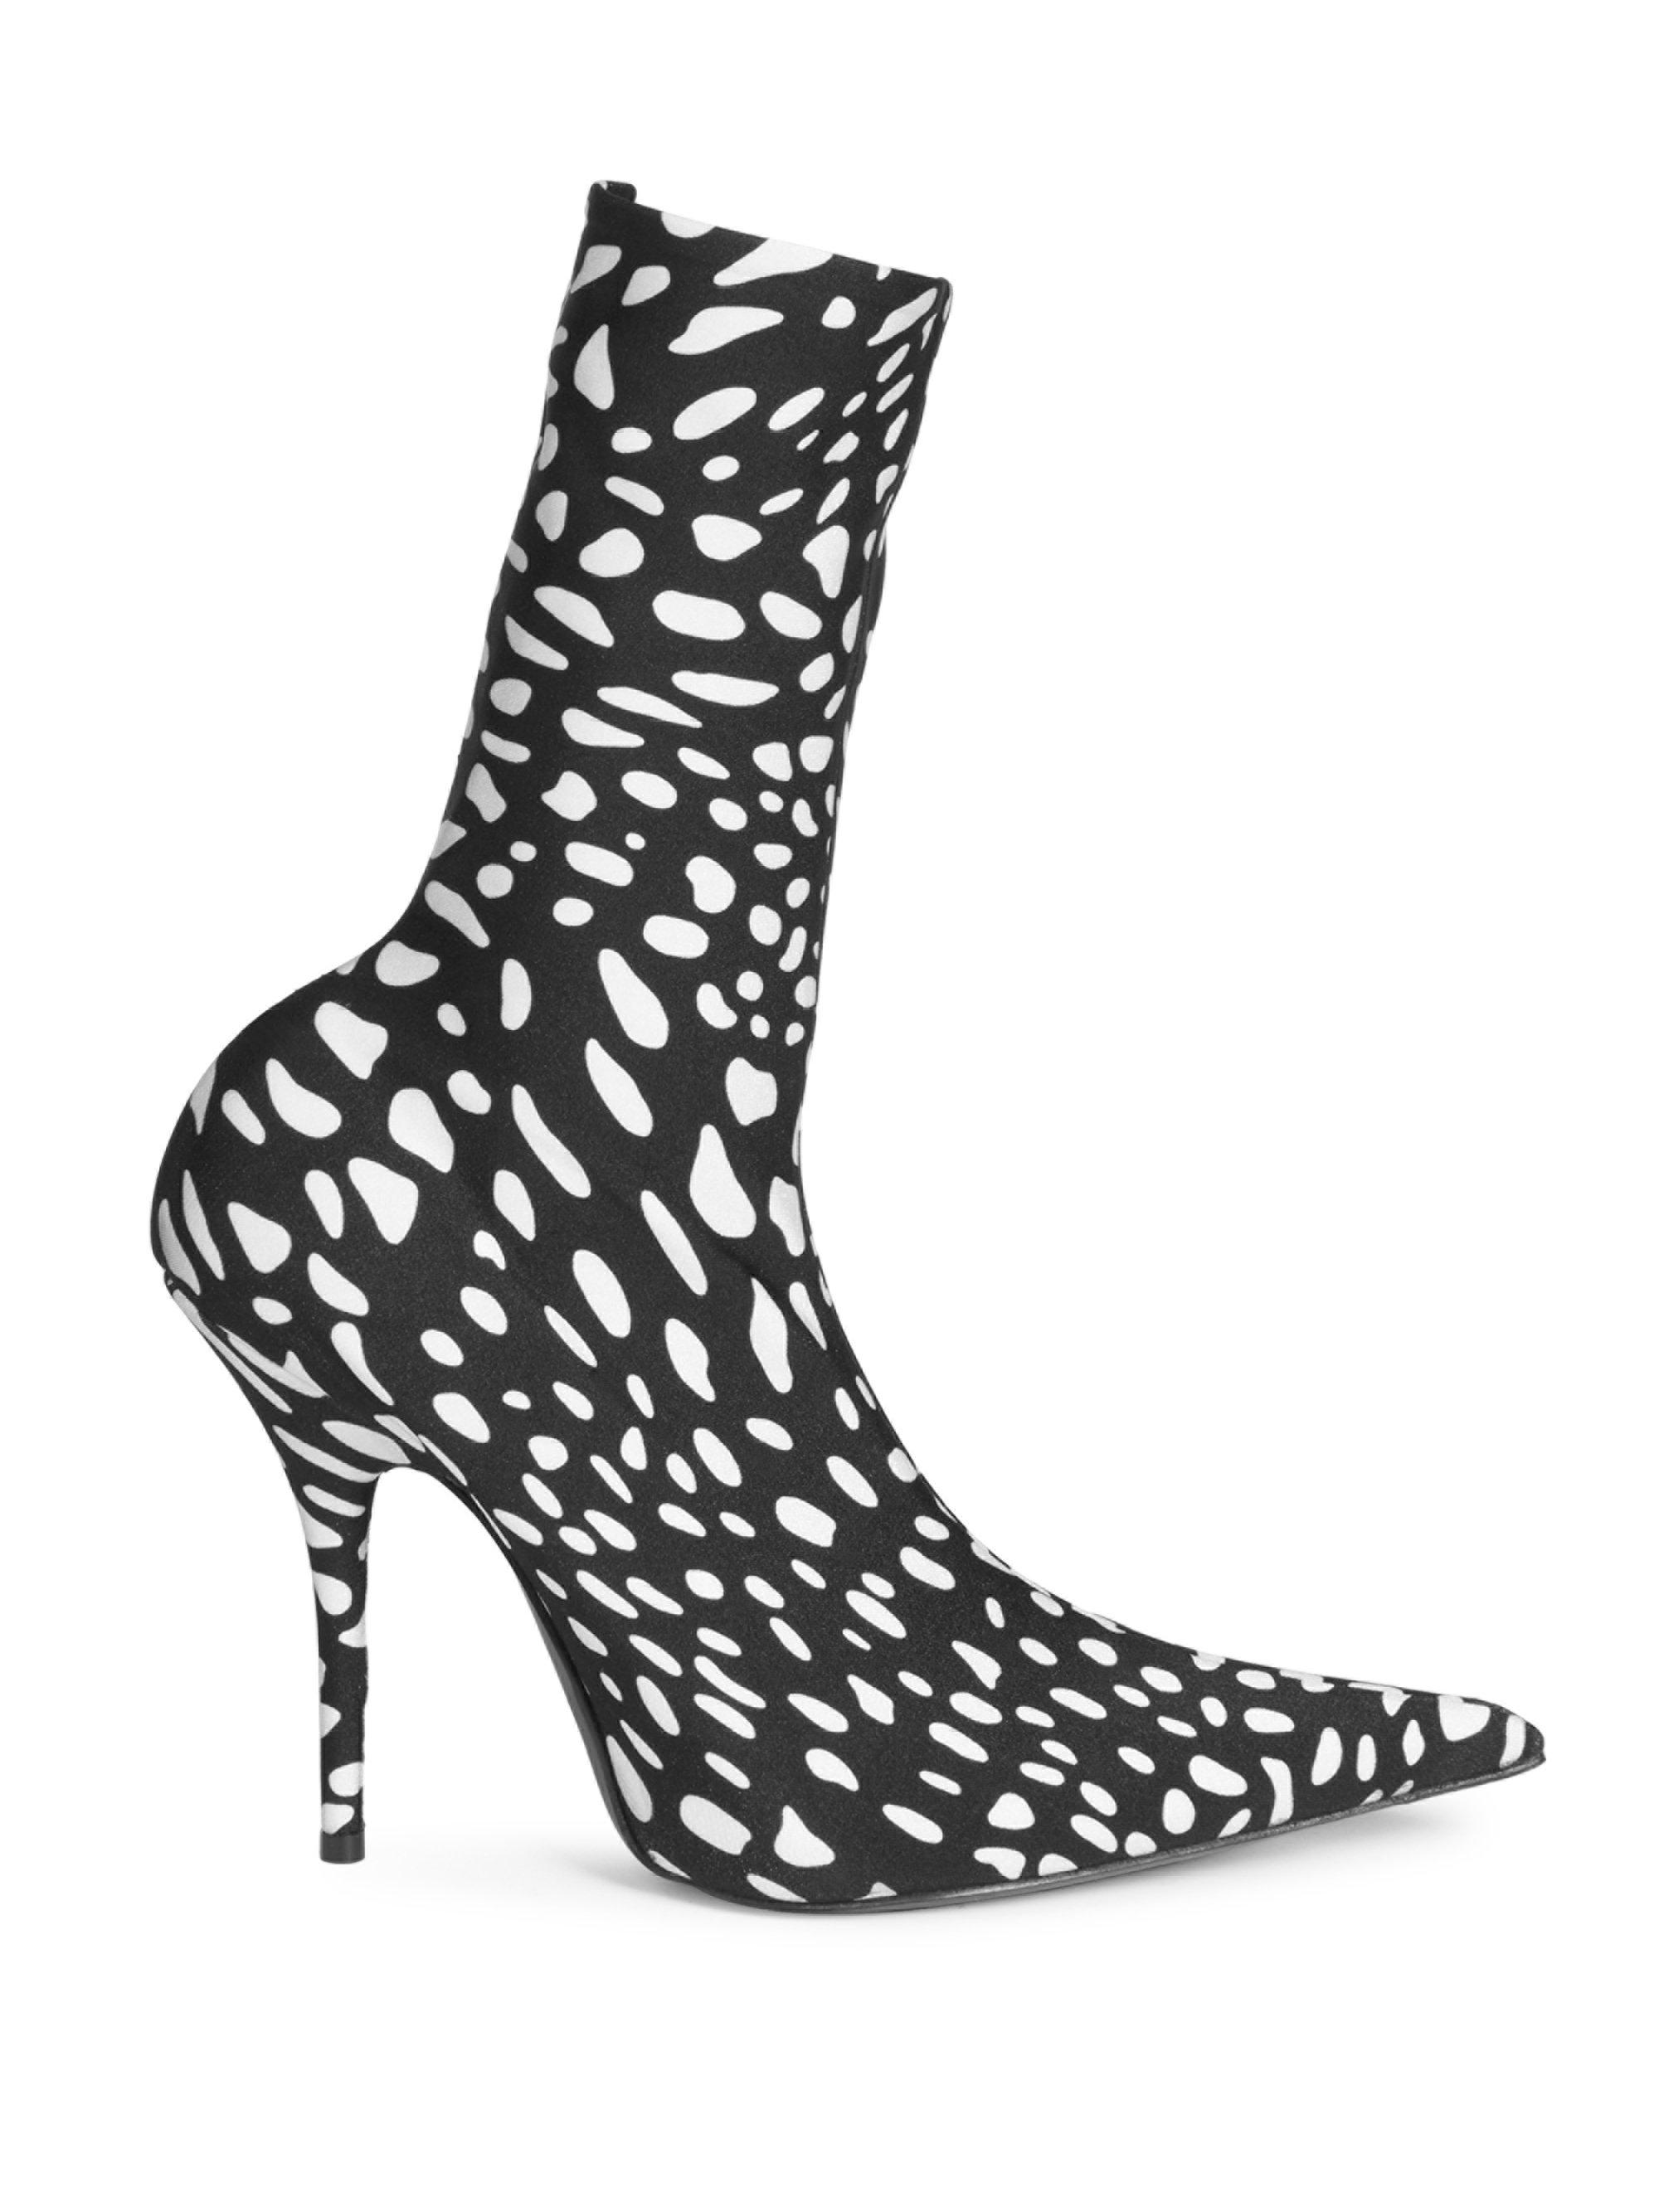 b46239d8f Balenciaga Animal-print Booties in Black - Lyst